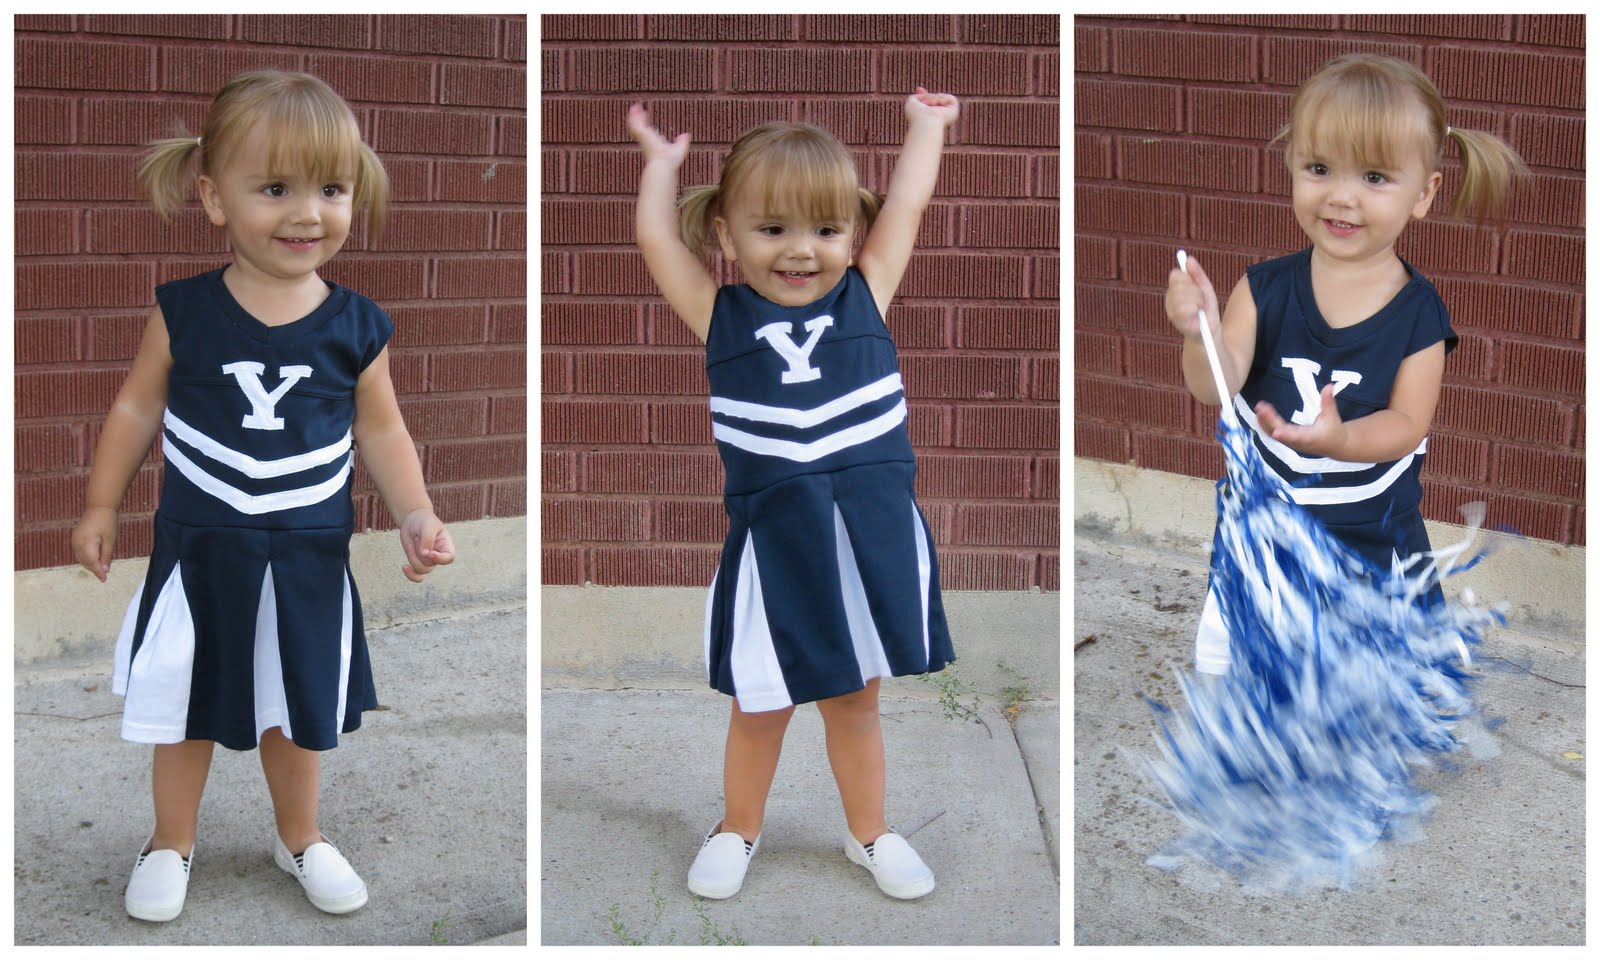 Toddler Cheer Dress Tutorial  sc 1 st  Peek-a-Boo Pages - Patterns Fabric u0026 More! & Toddler Cheer Dress Tutorial - Peek-a-Boo Pages - Patterns Fabric ...